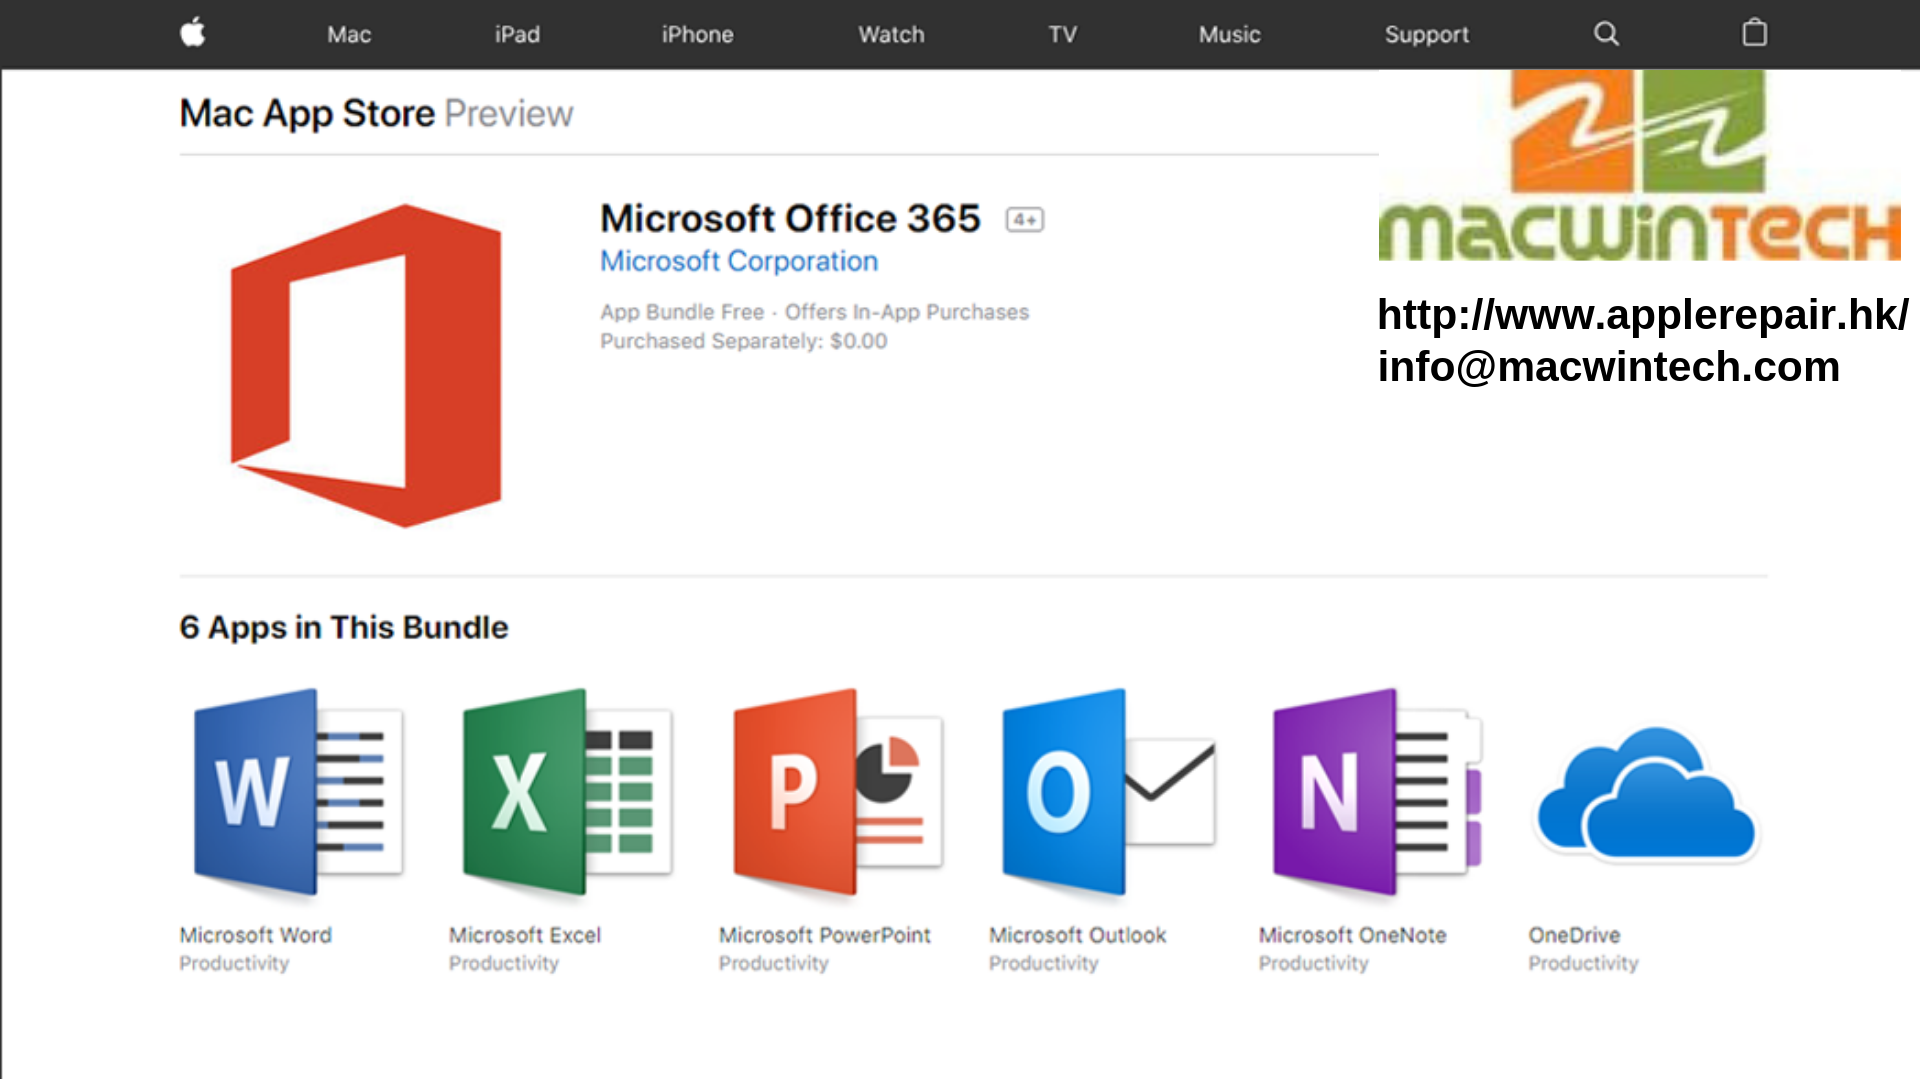 Today, Office 365 is available on the Mac App Store, making it